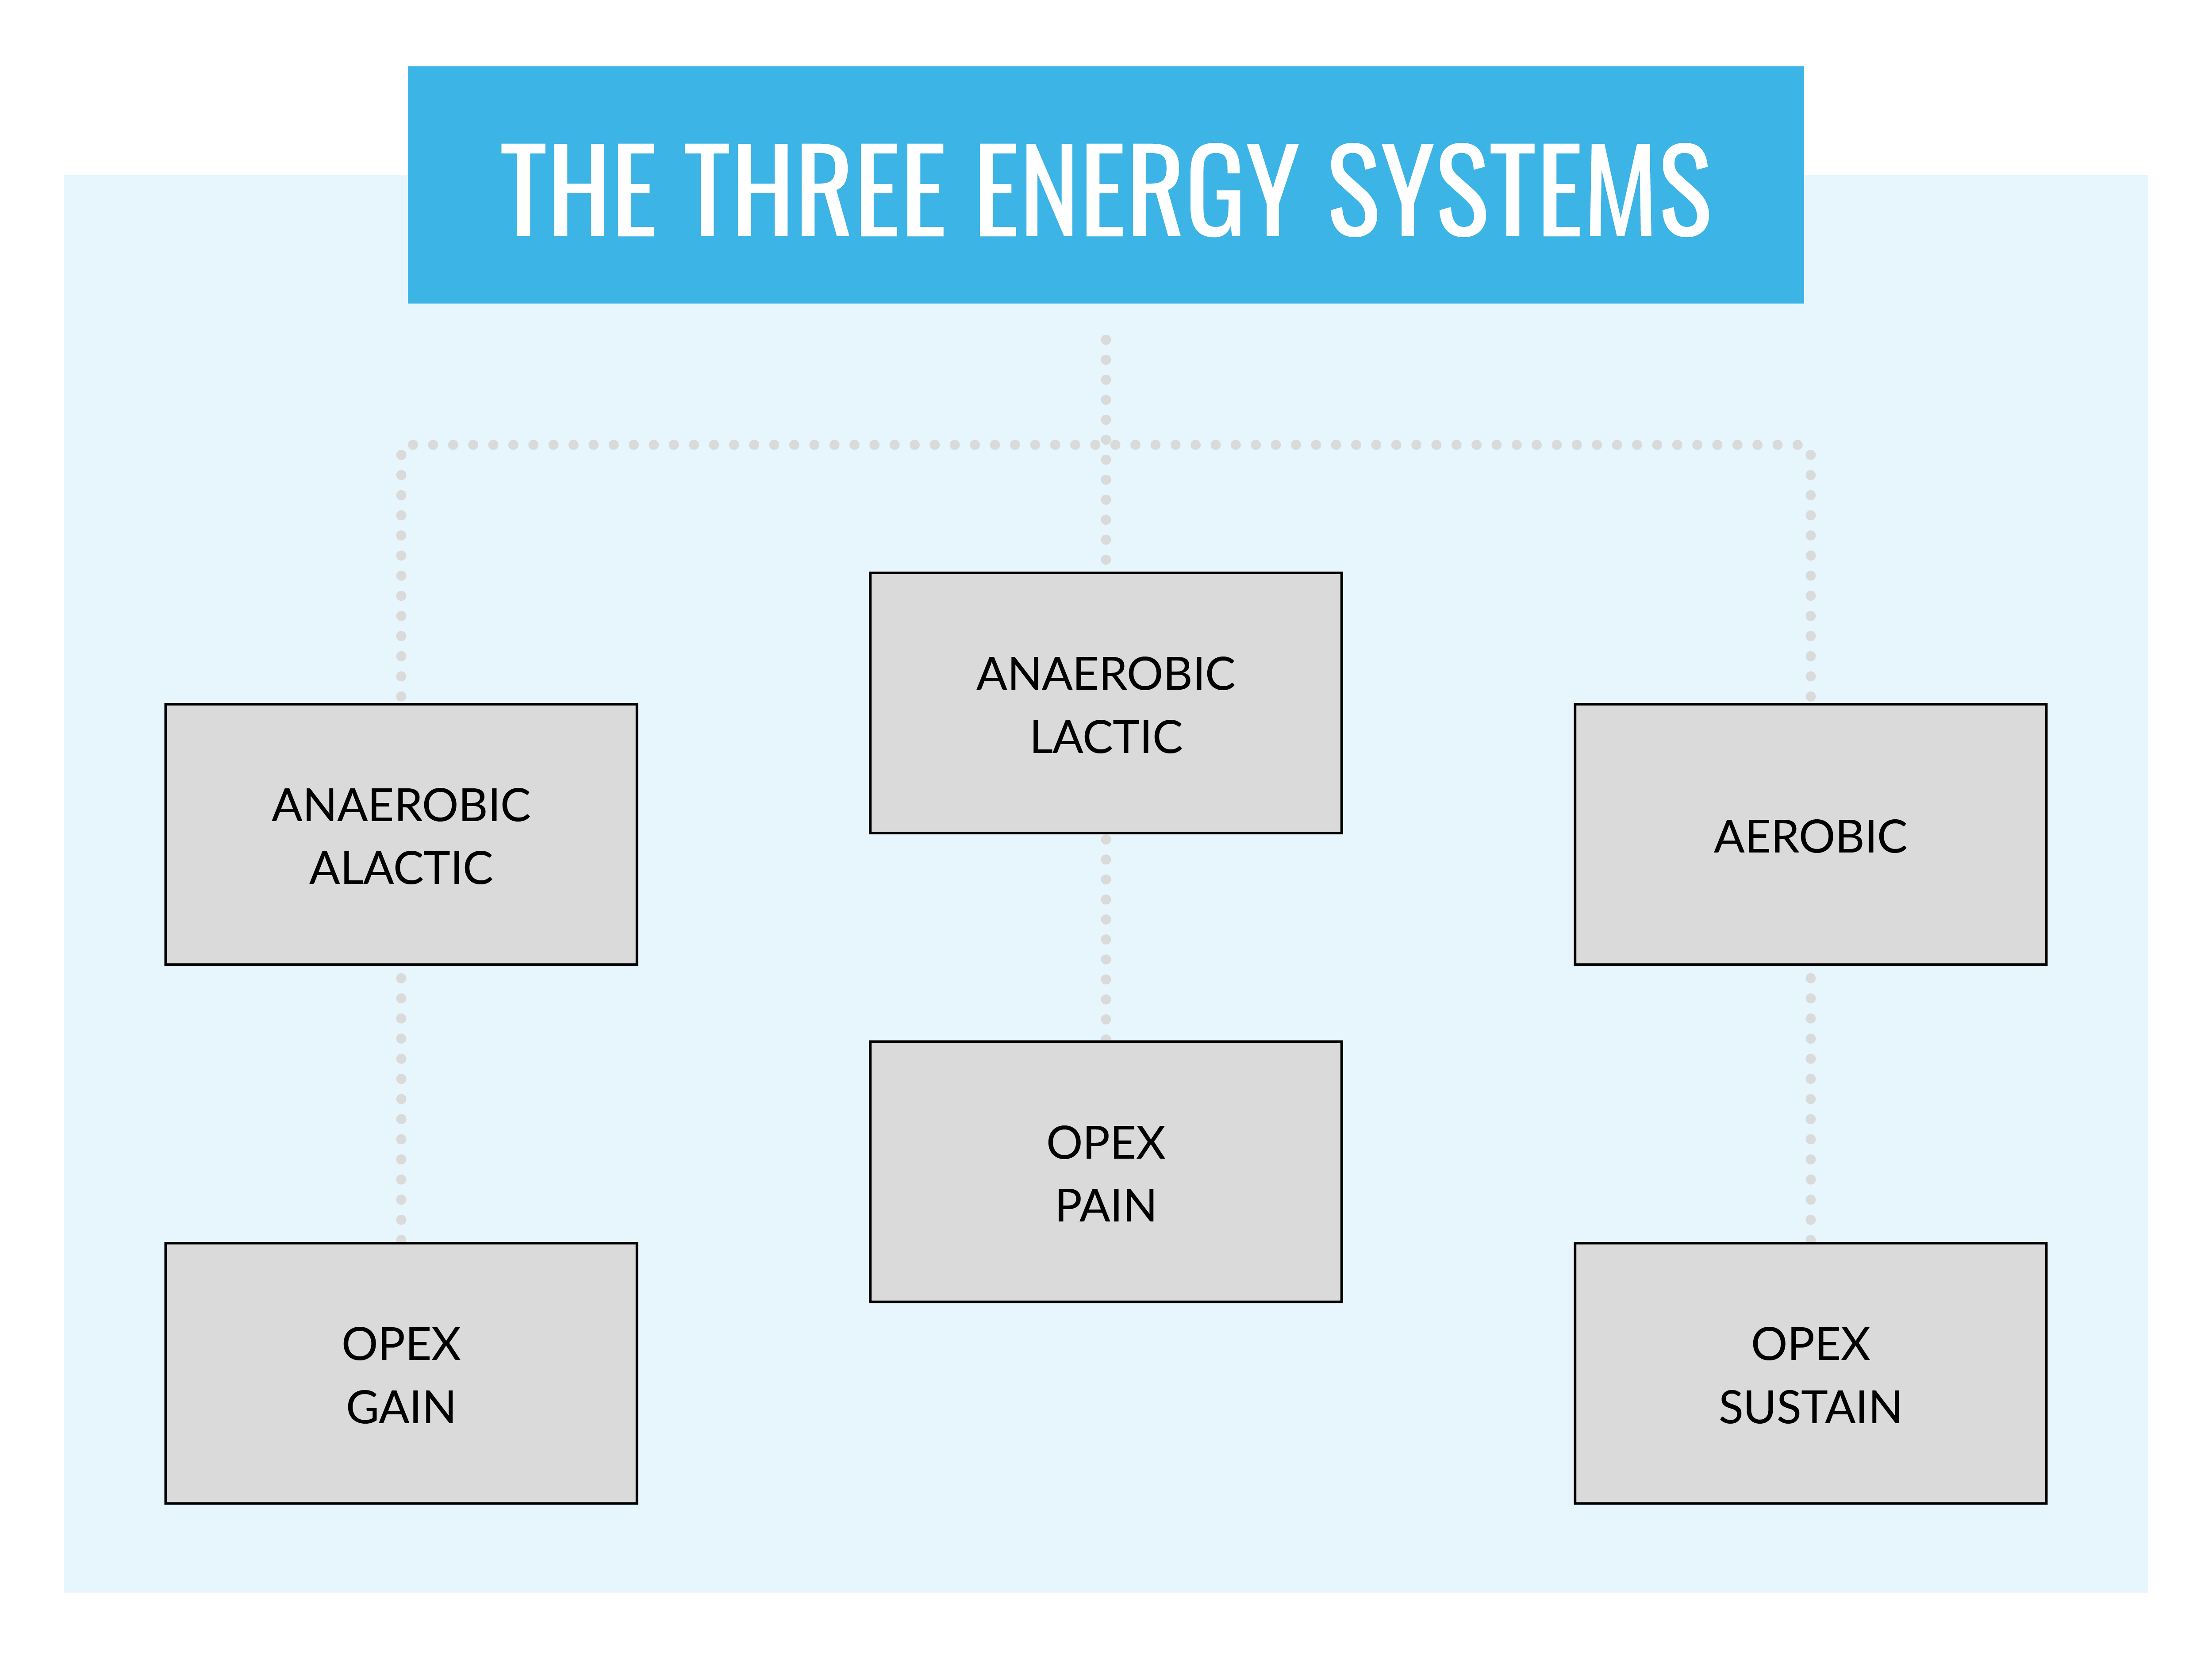 Three Energy Systems infographic